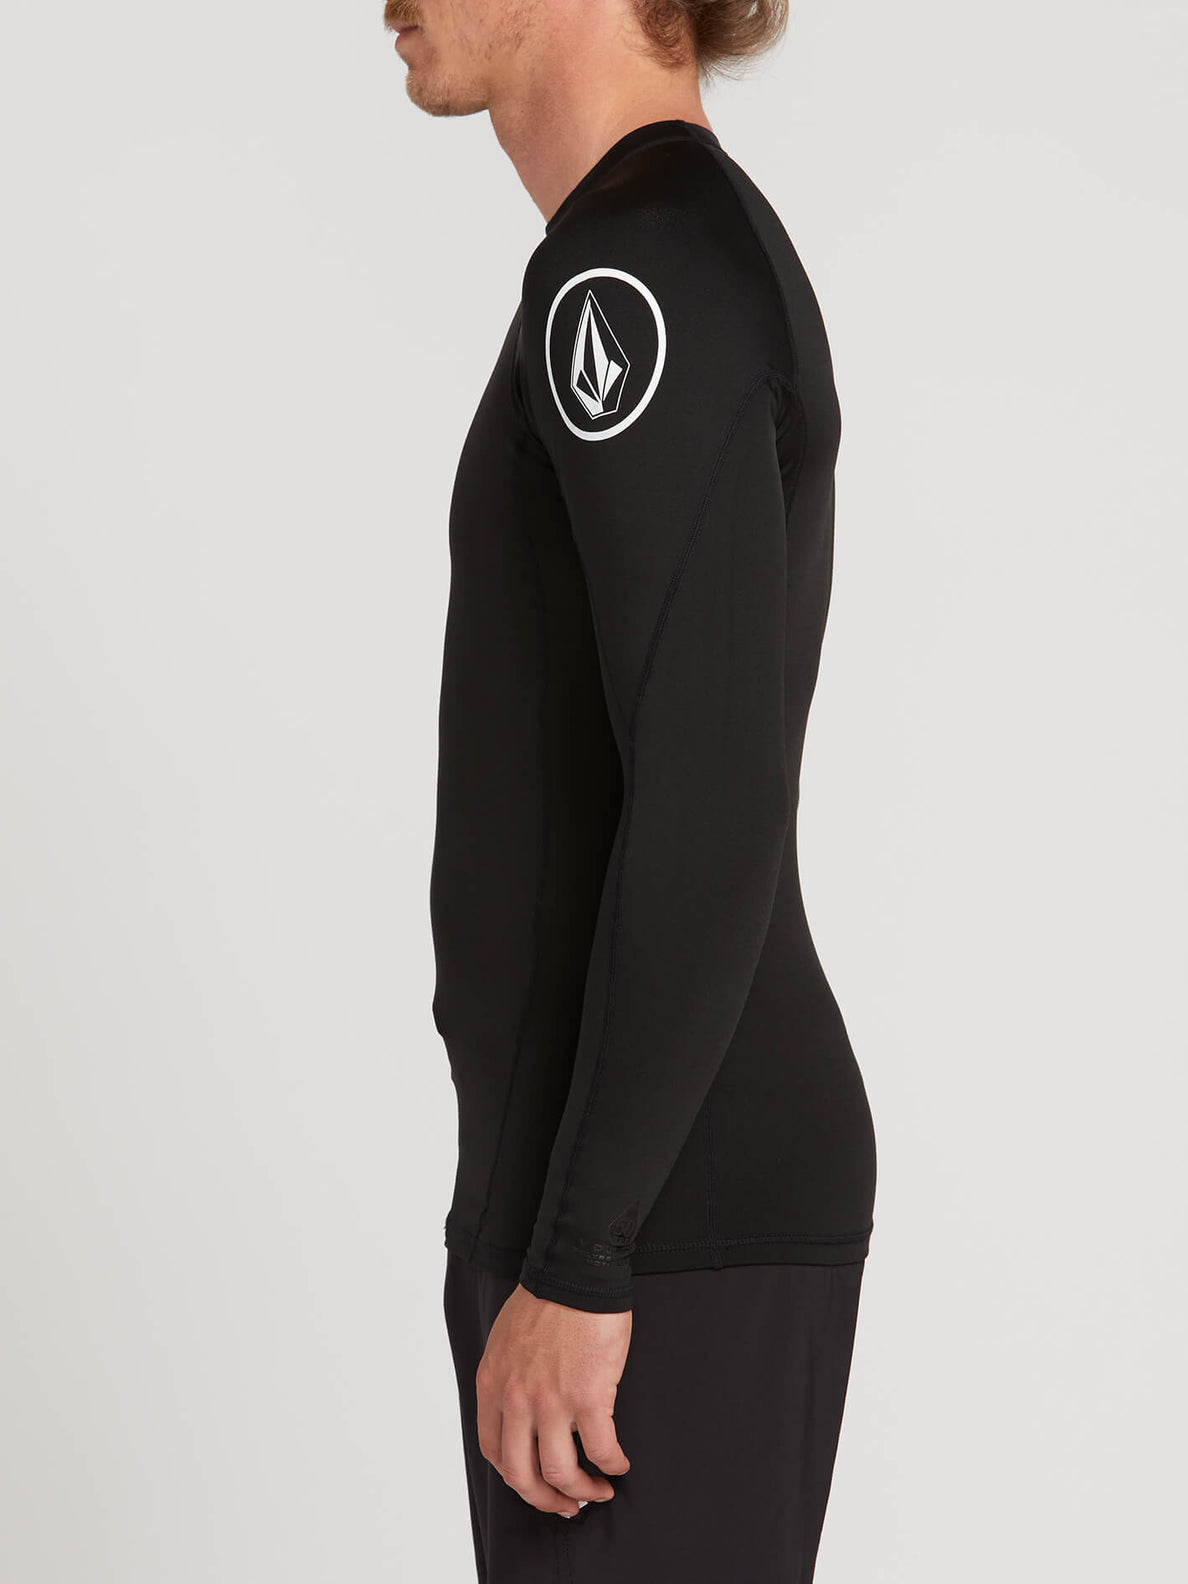 Hotainer Long Sleeve Rashguard In Black, Alternate View